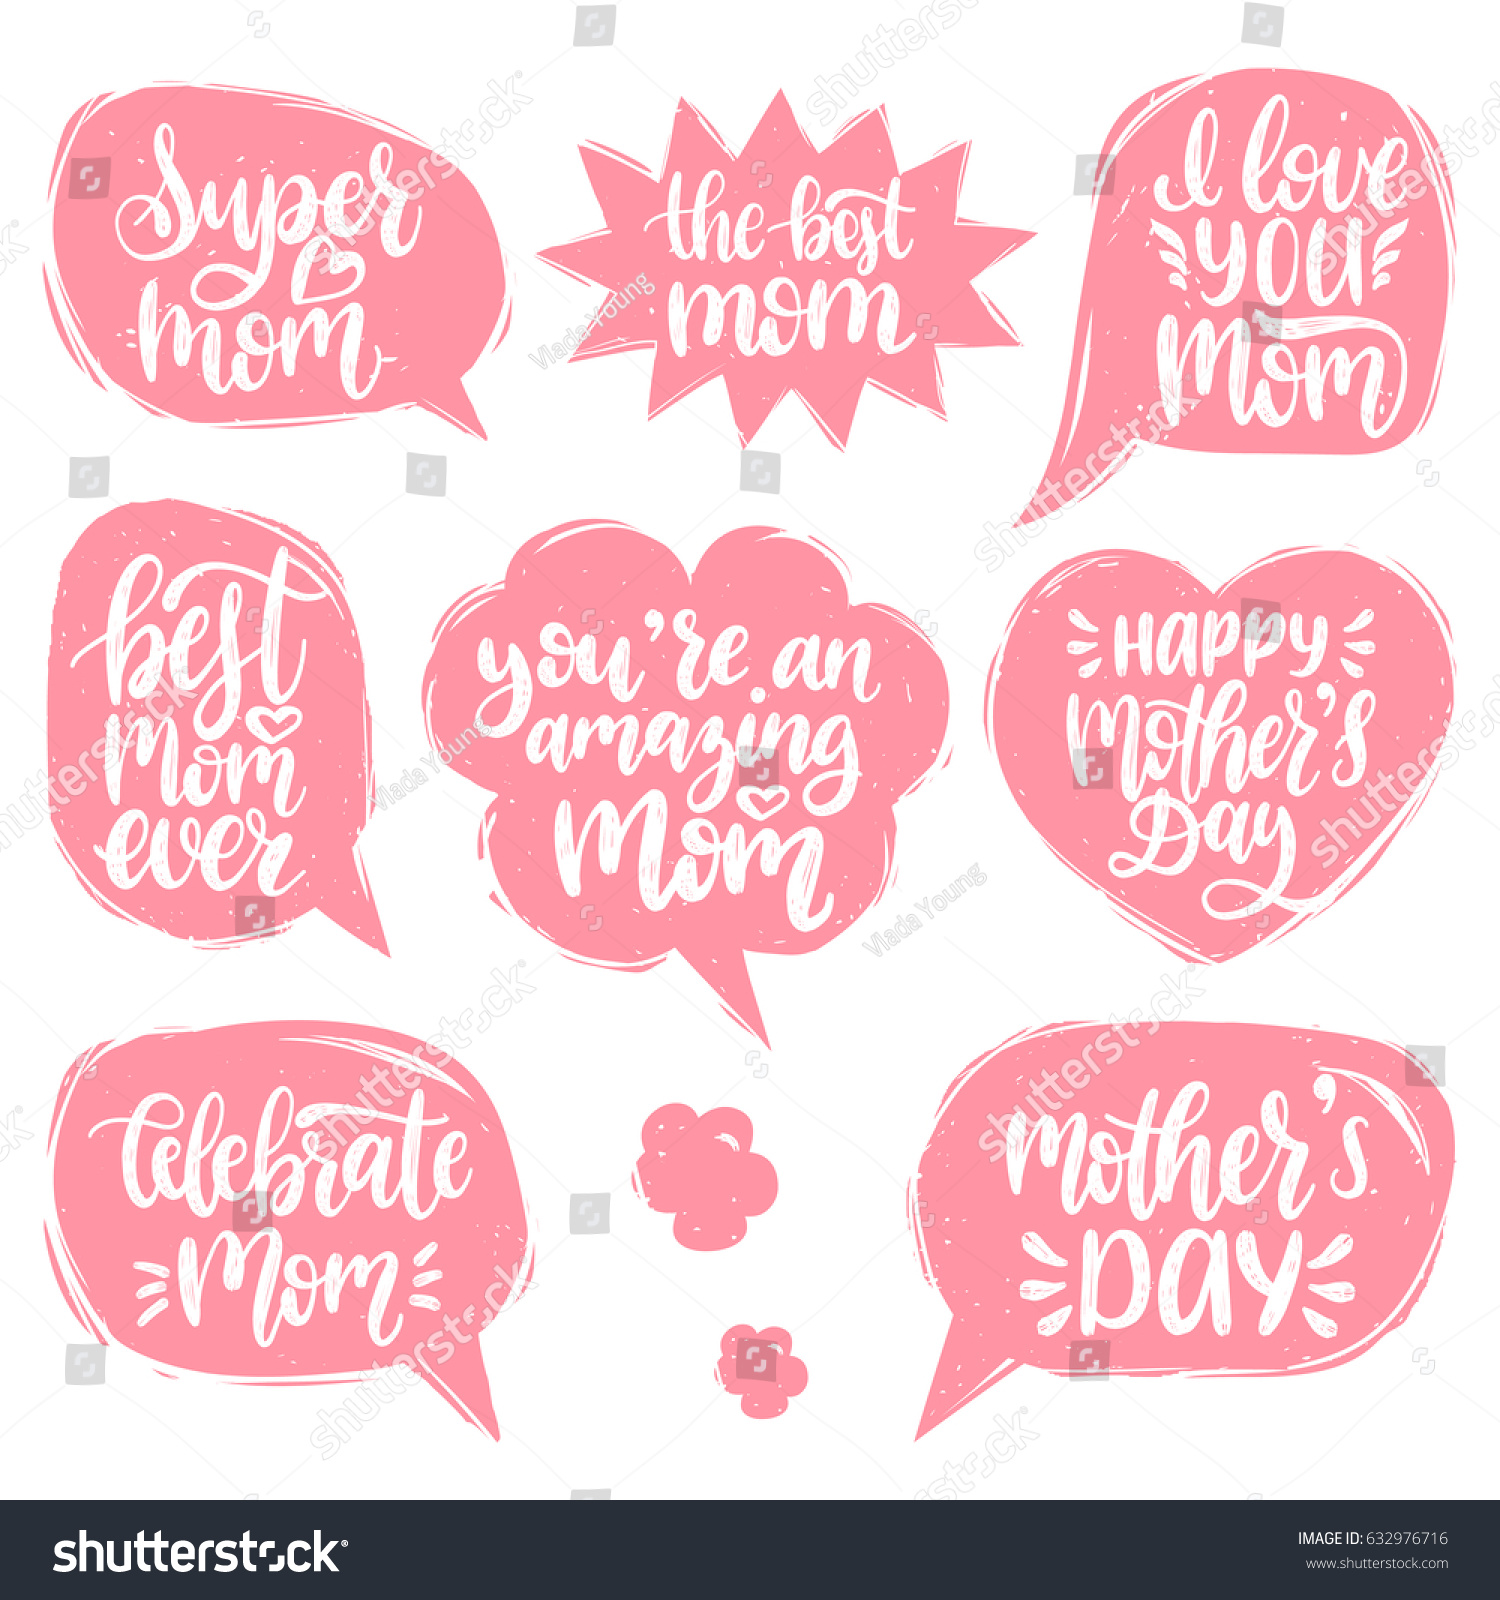 Vector set mothers day hand lettering stock vector 632976716 vector set of mothers day hand lettering in speech bubbles for greeting cards posters kristyandbryce Choice Image